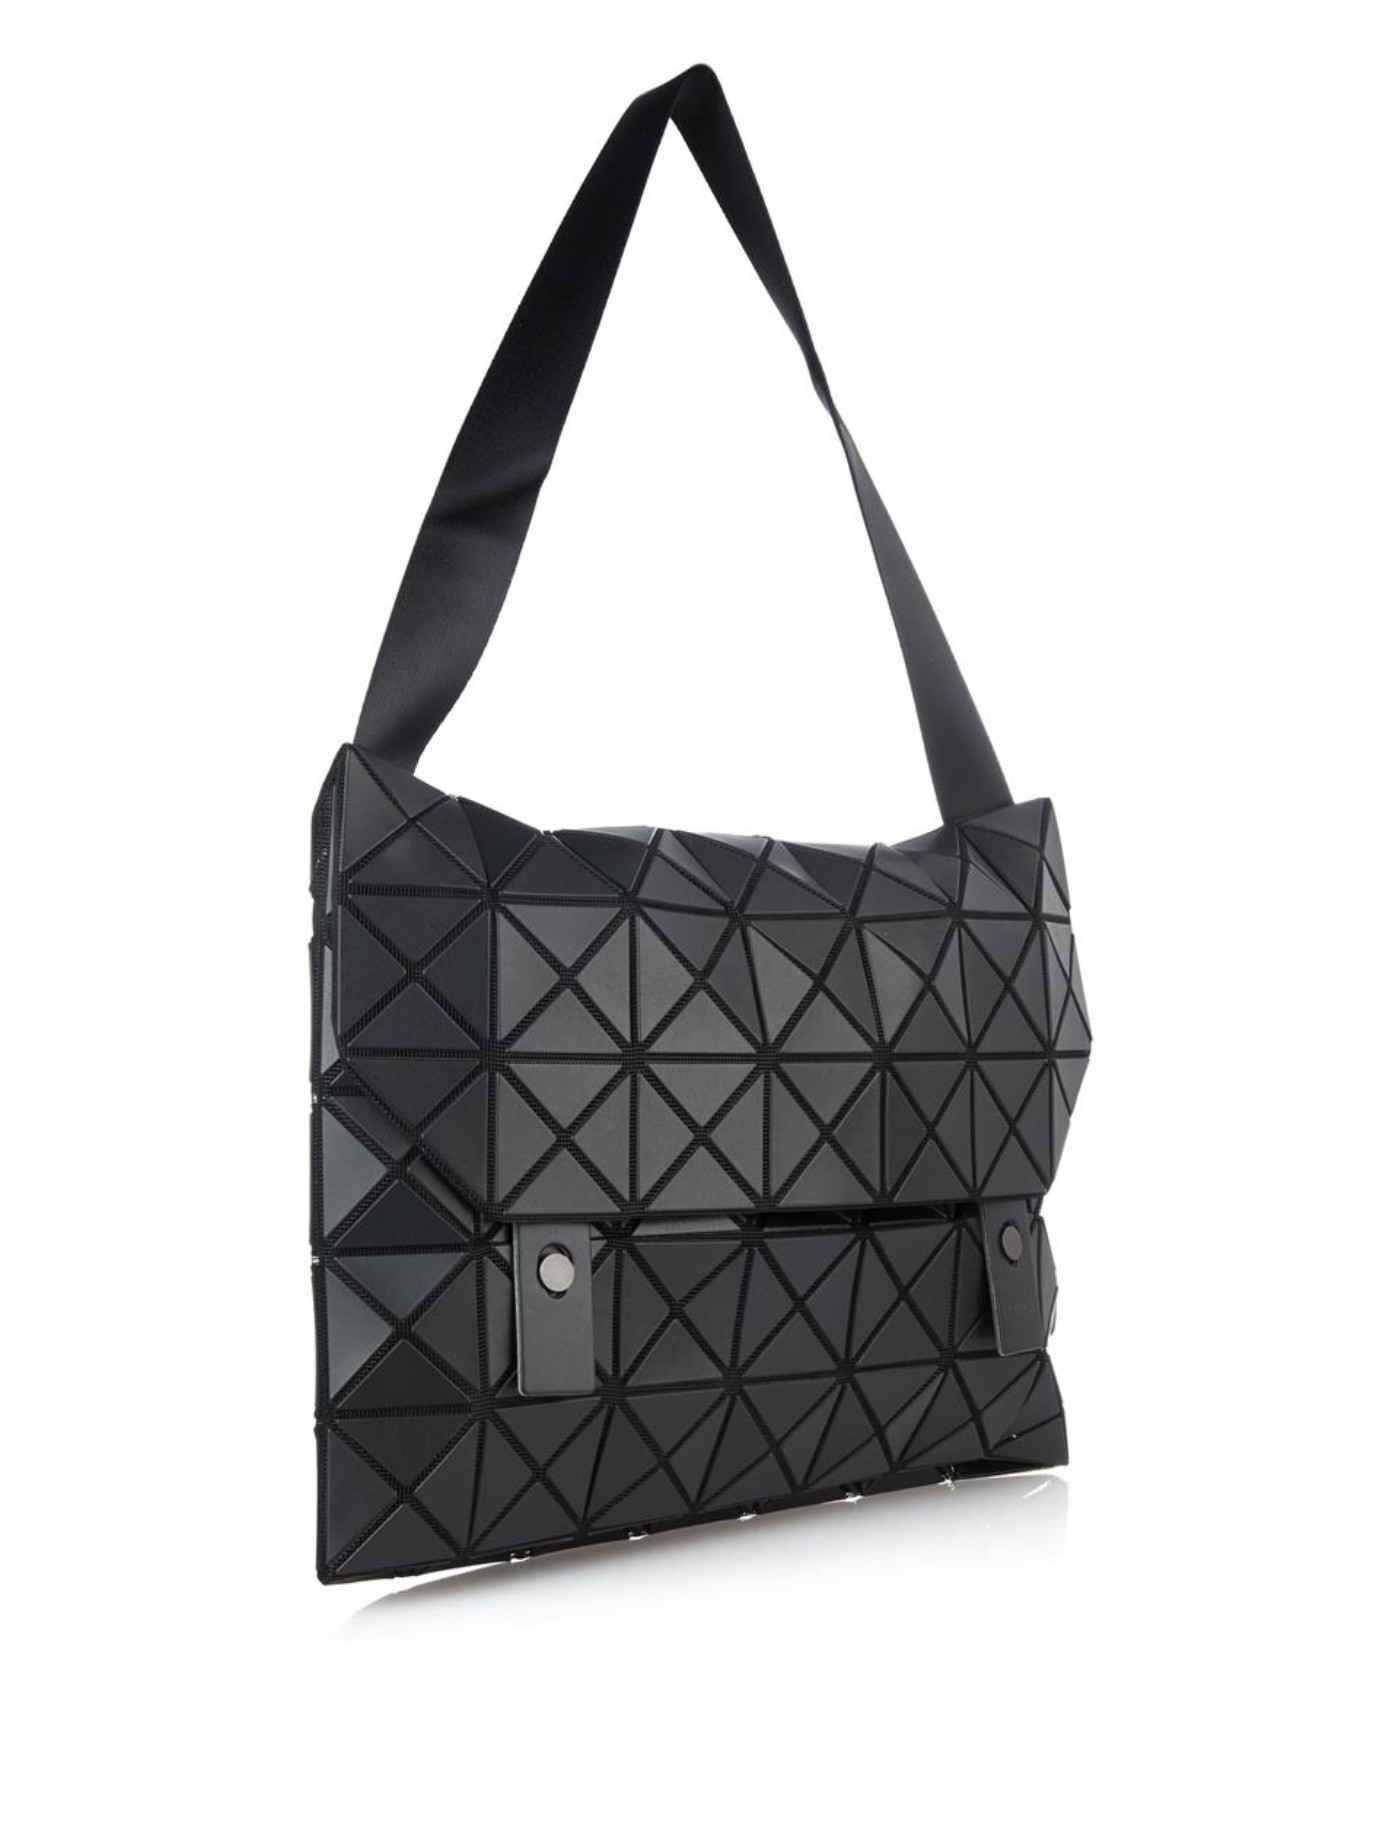 Lyst - Bao Bao Issey Miyake Prism Messenger Bag in Black for Men 0ee69deb7d2c0